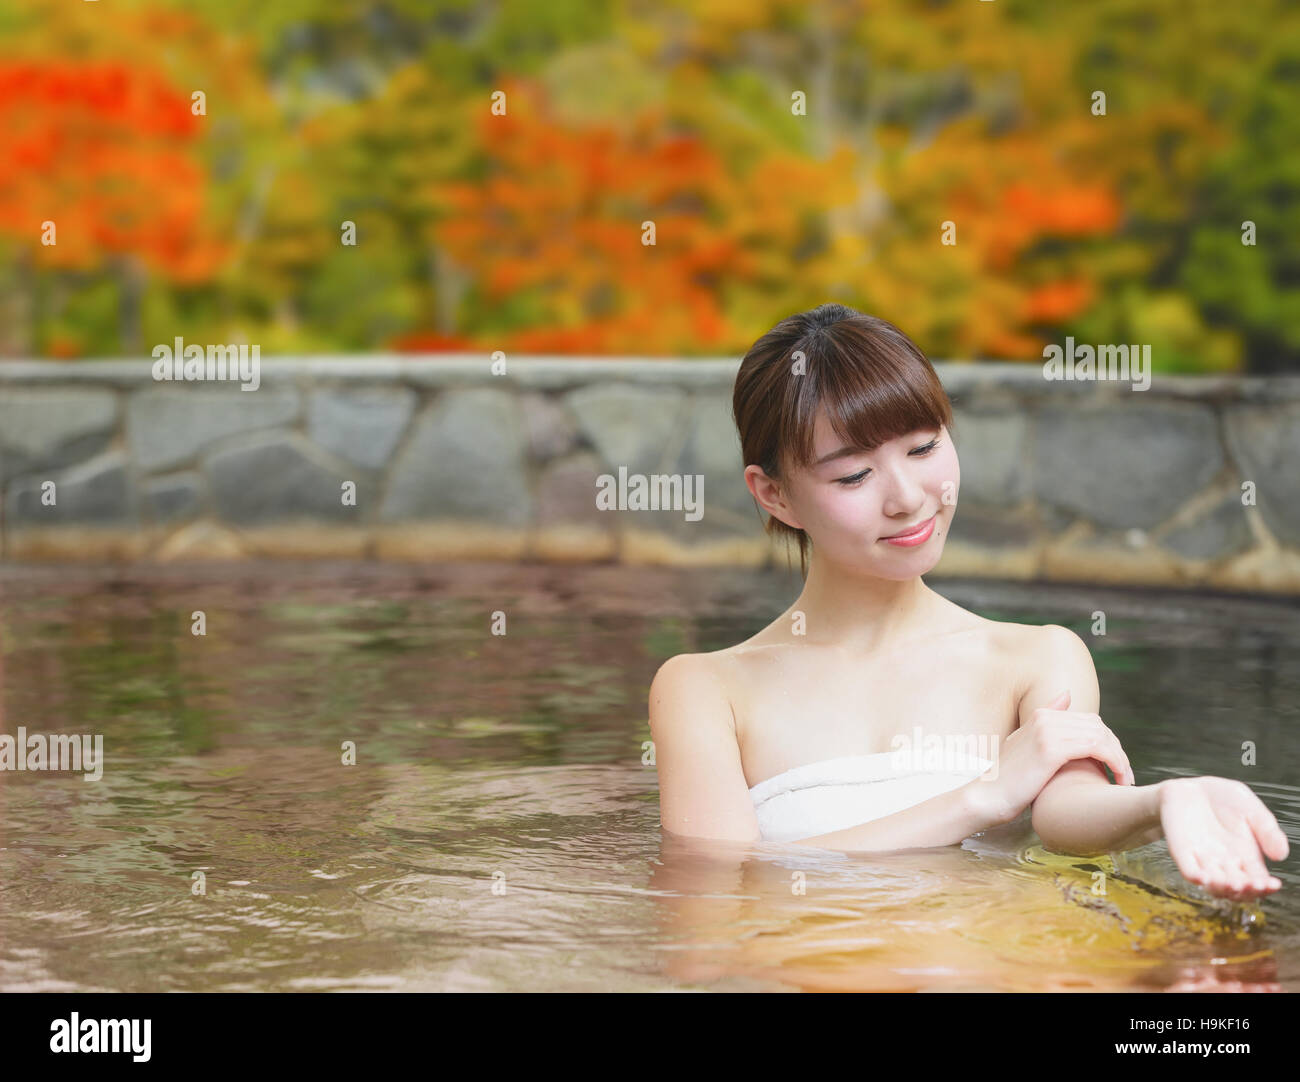 Bathing Girl Japanese